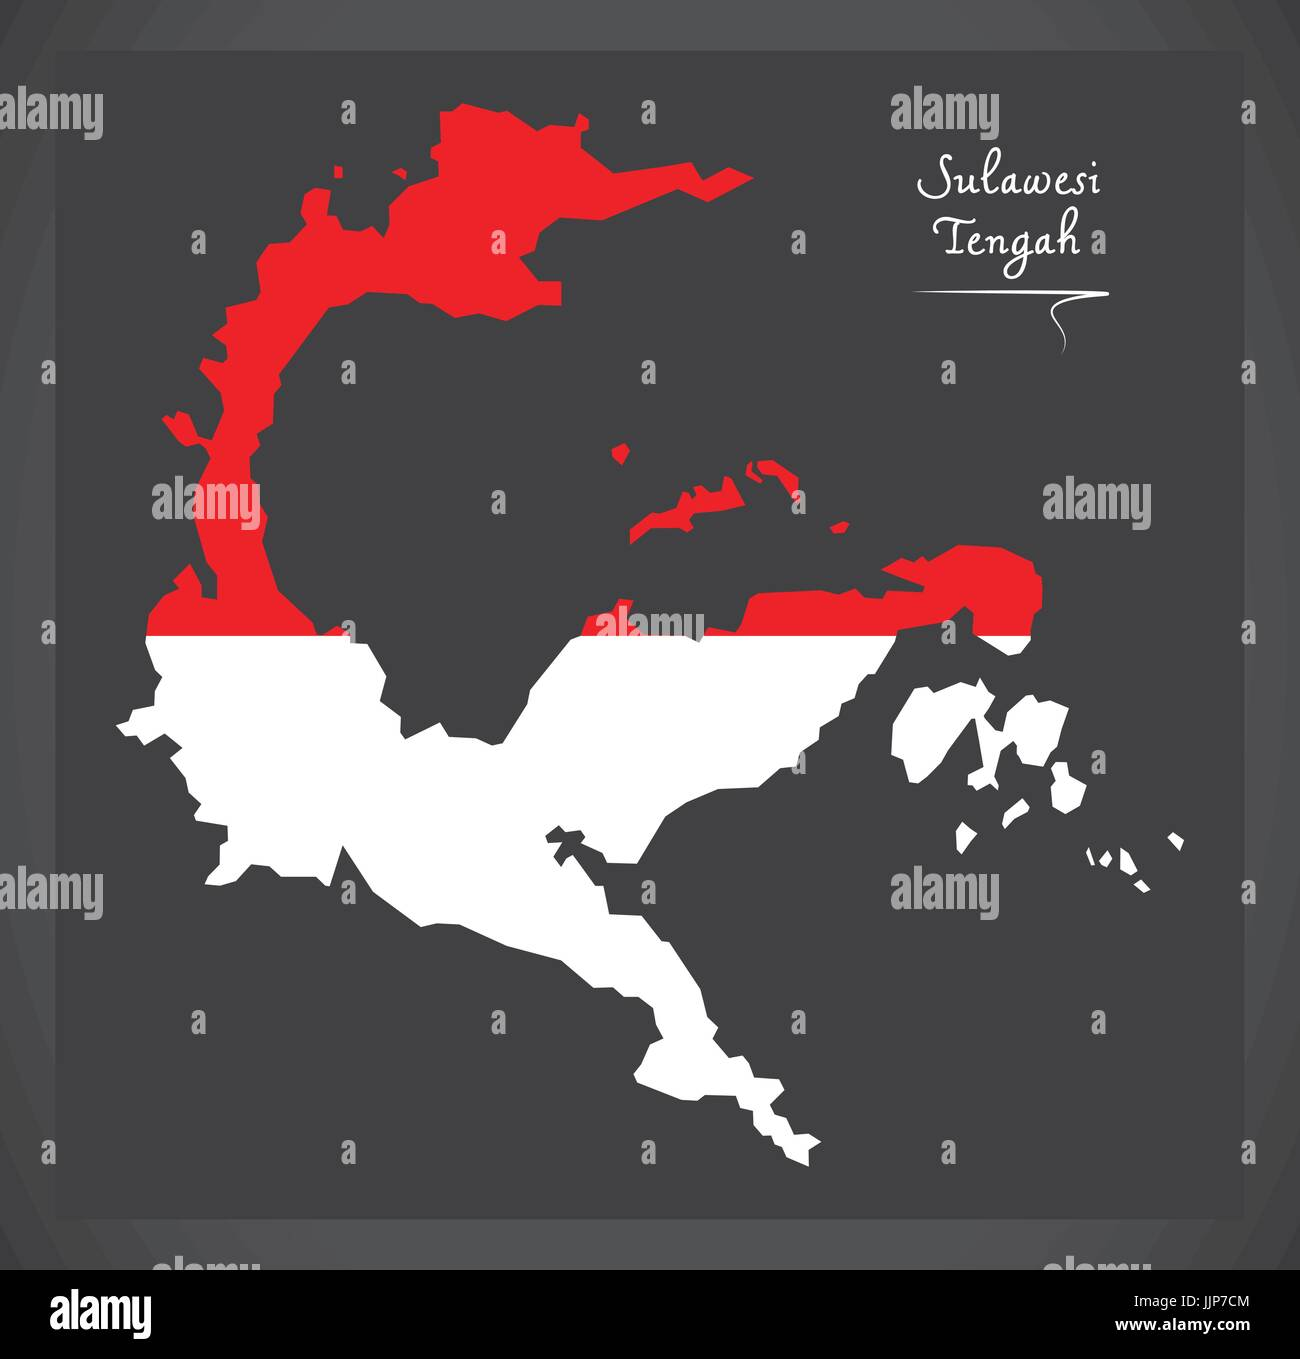 Sulawesi Tengah Indonesia map with Indonesian national flag illustration - Stock Vector